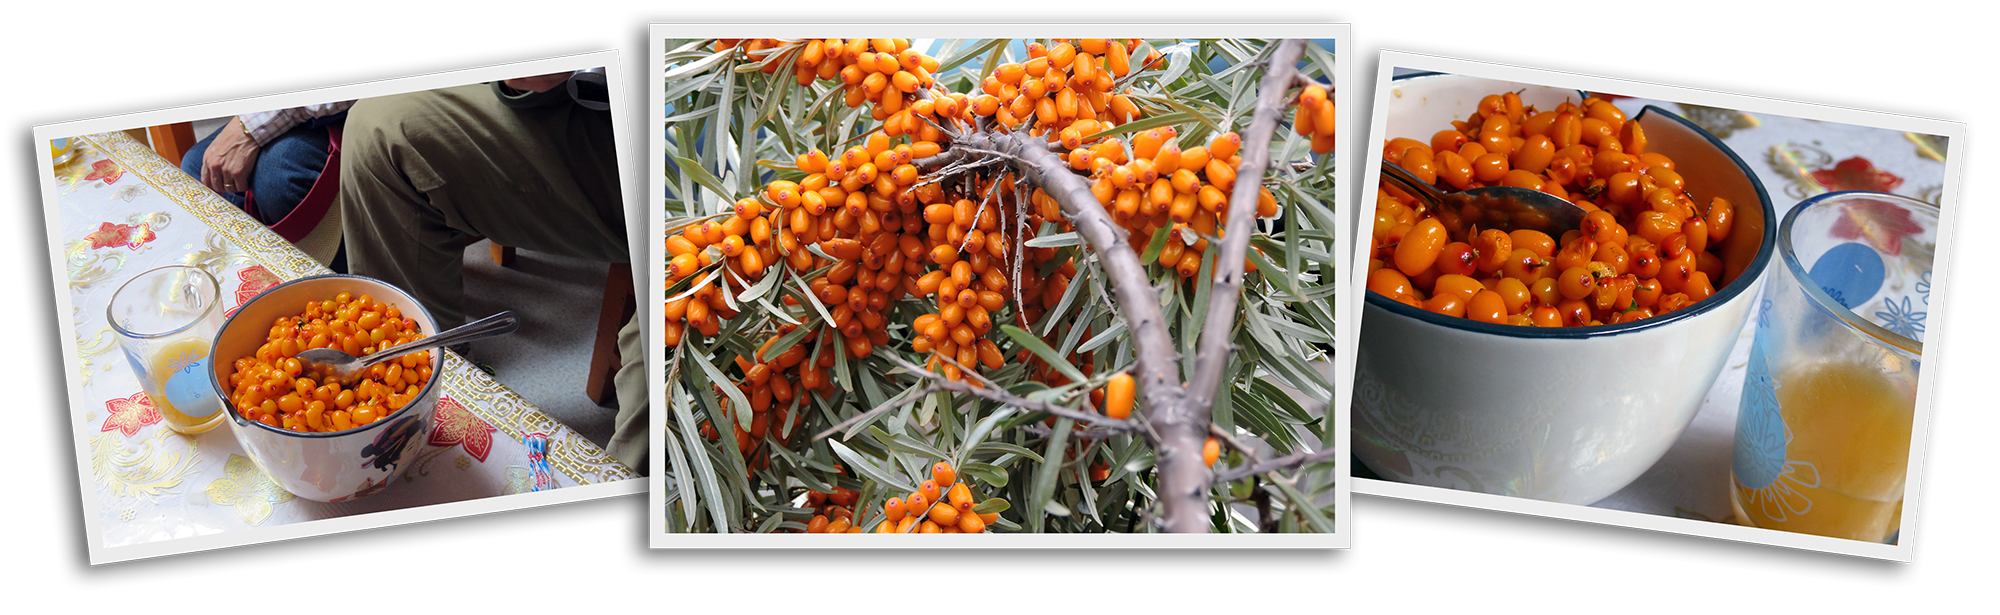 seabuckthorn-collage